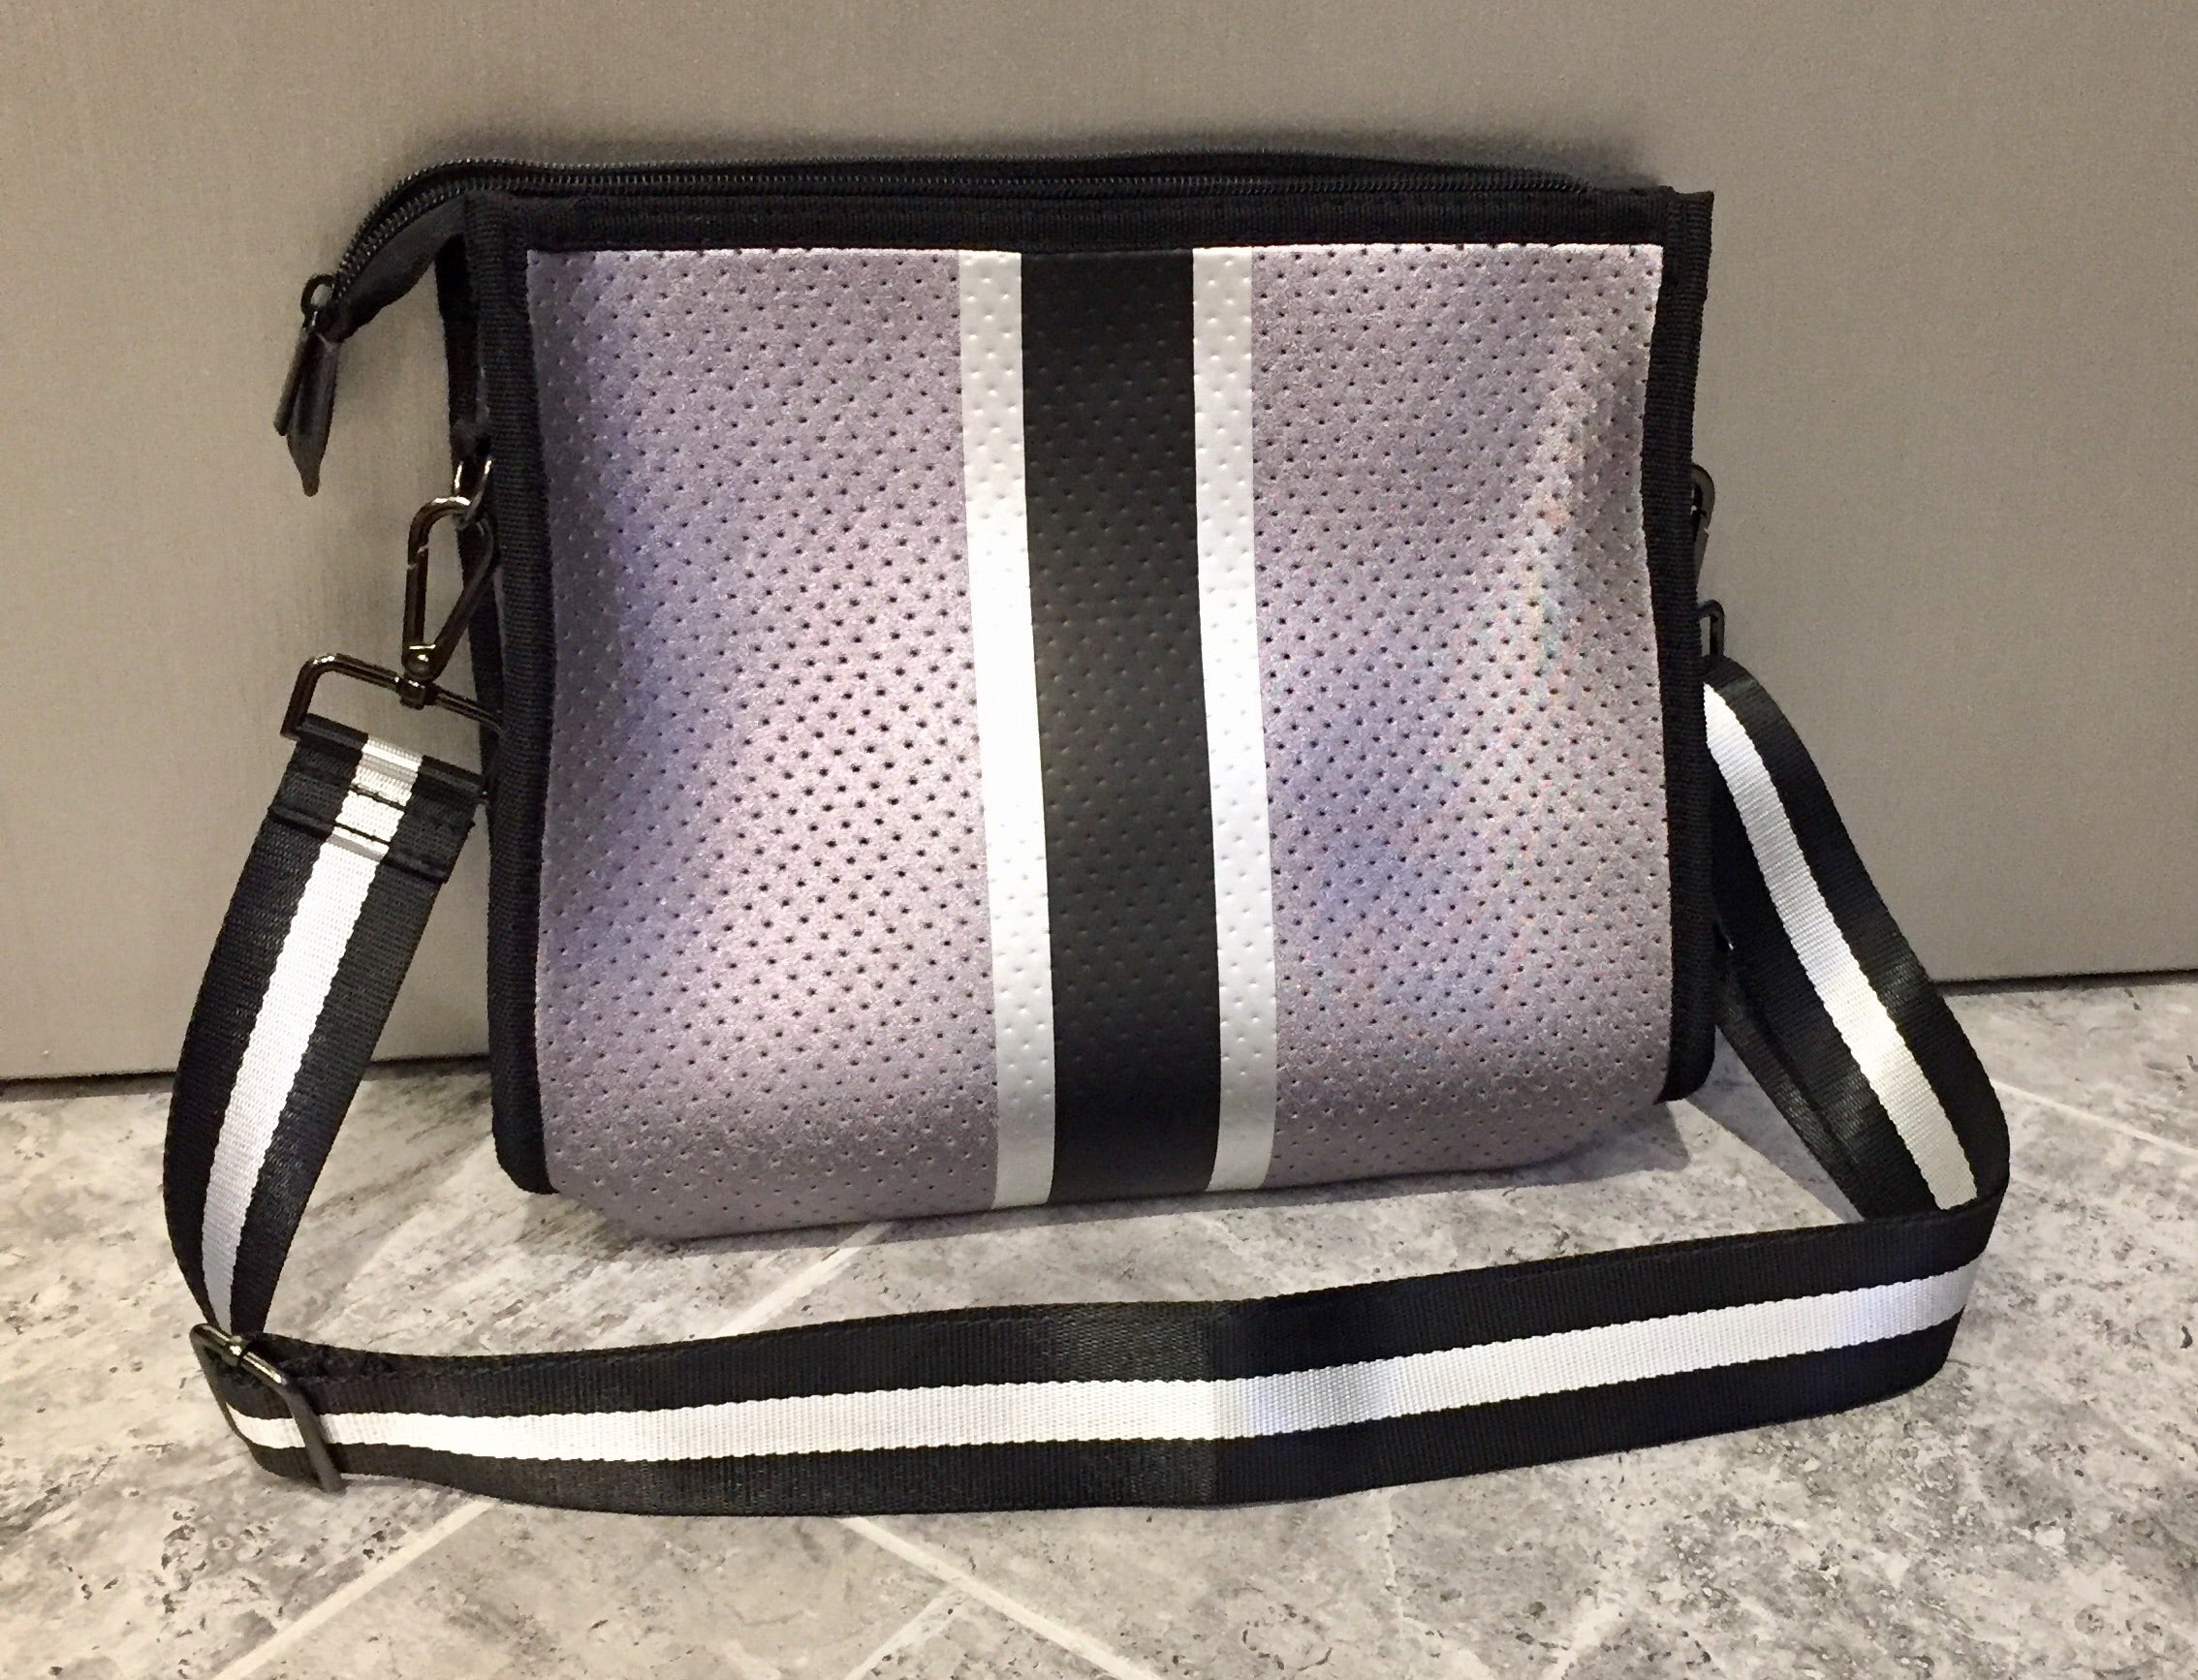 Neoprene shoulder/crossbody bag